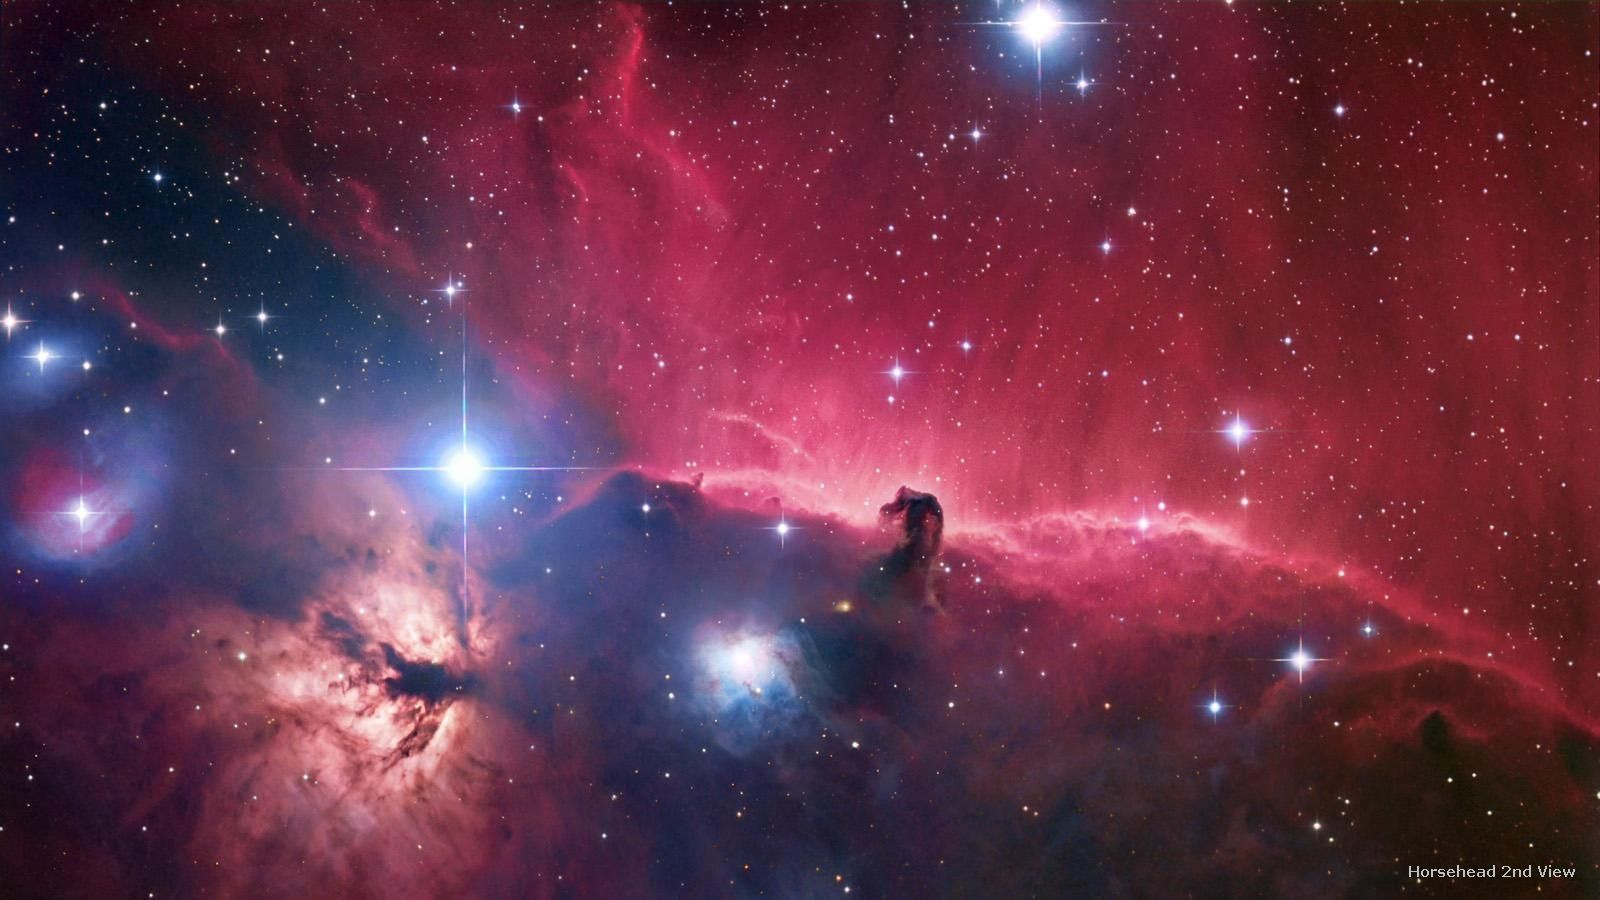 Space Nebula Horsehead picture nr 39666 1600x900